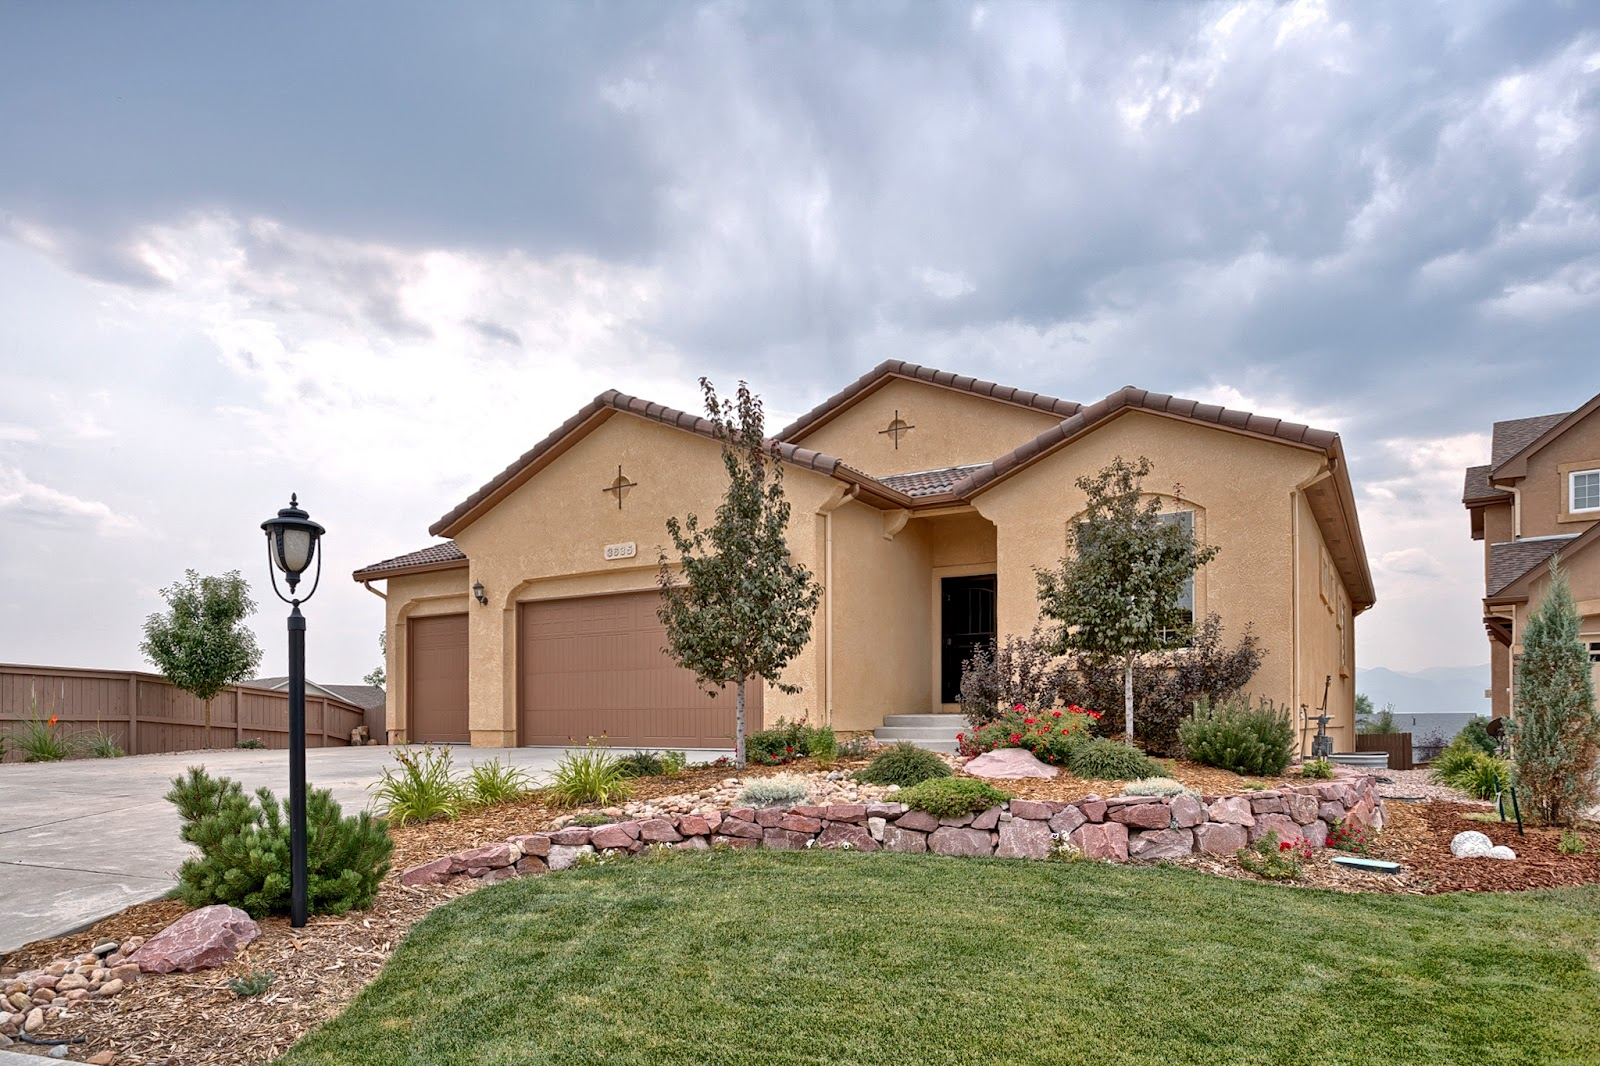 Colorado springs real estate beautiful home for sale in Beautiful real estate pictures